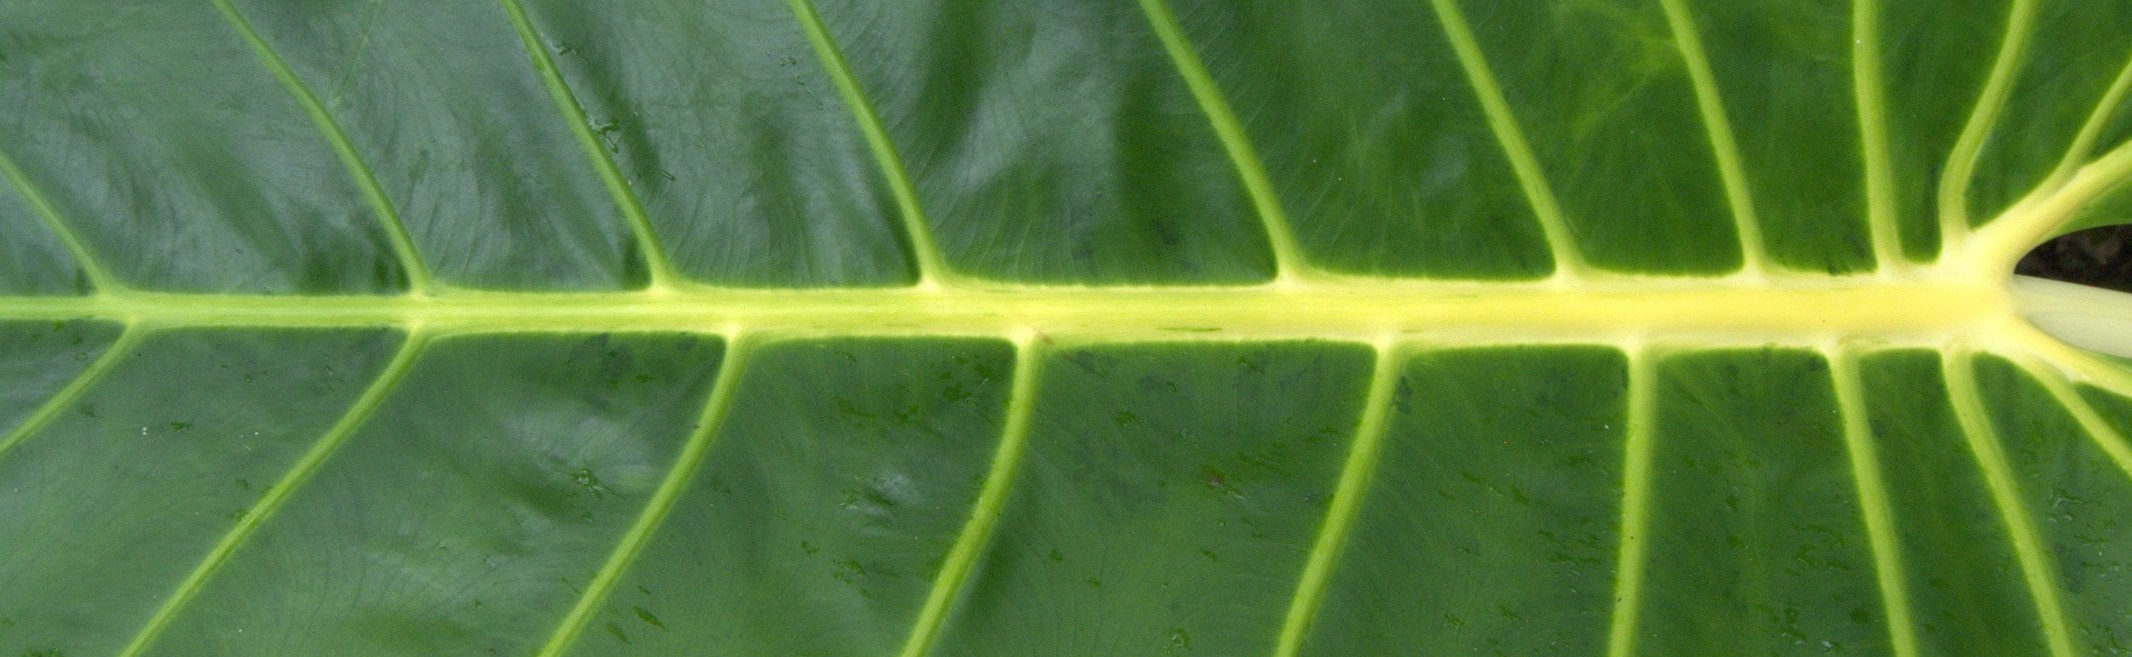 Yellow-lined taro leaf (Photo: Flickr/Jim)